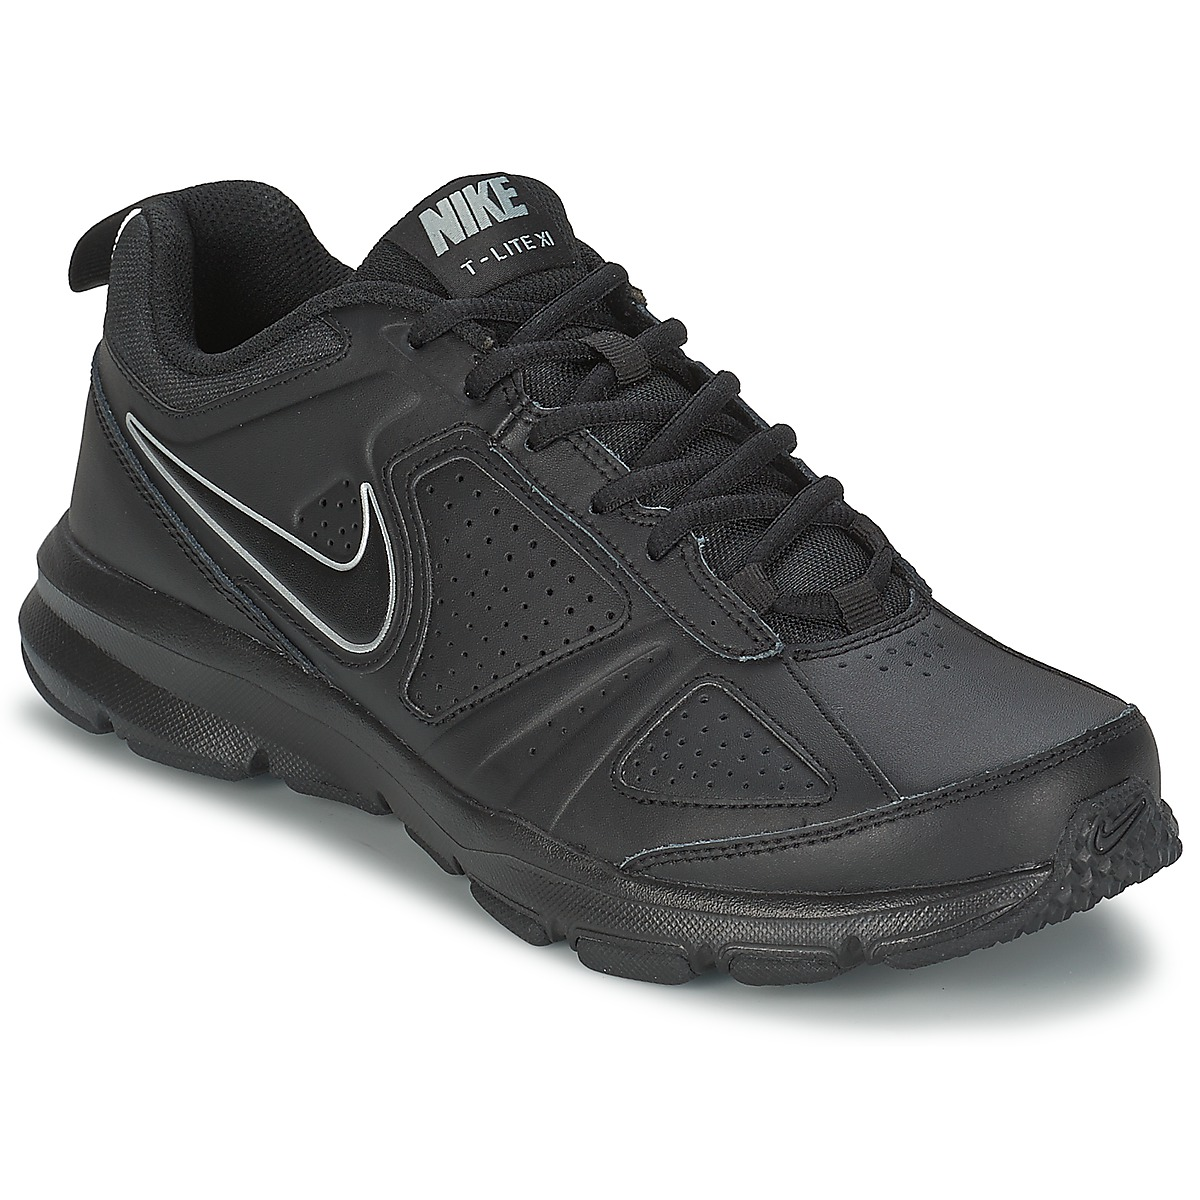 taille 40 70922 7e562 chaussure nike taille,chaussure nike fille swag,chaussure ...